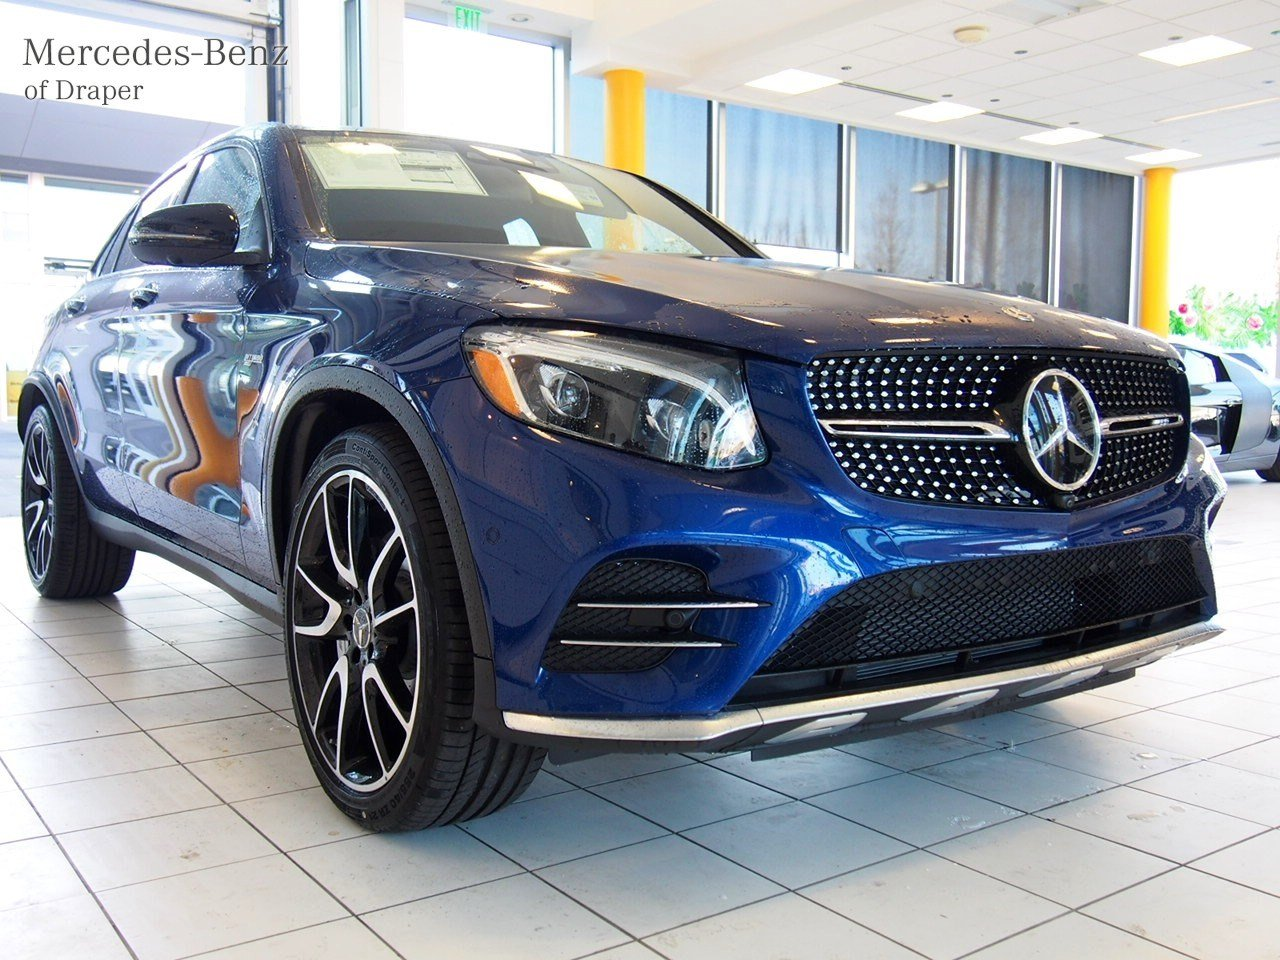 new 2018 mercedes benz glc amg glc 43 4matic coupe in draper jf367092 mercedes benz of draper. Black Bedroom Furniture Sets. Home Design Ideas